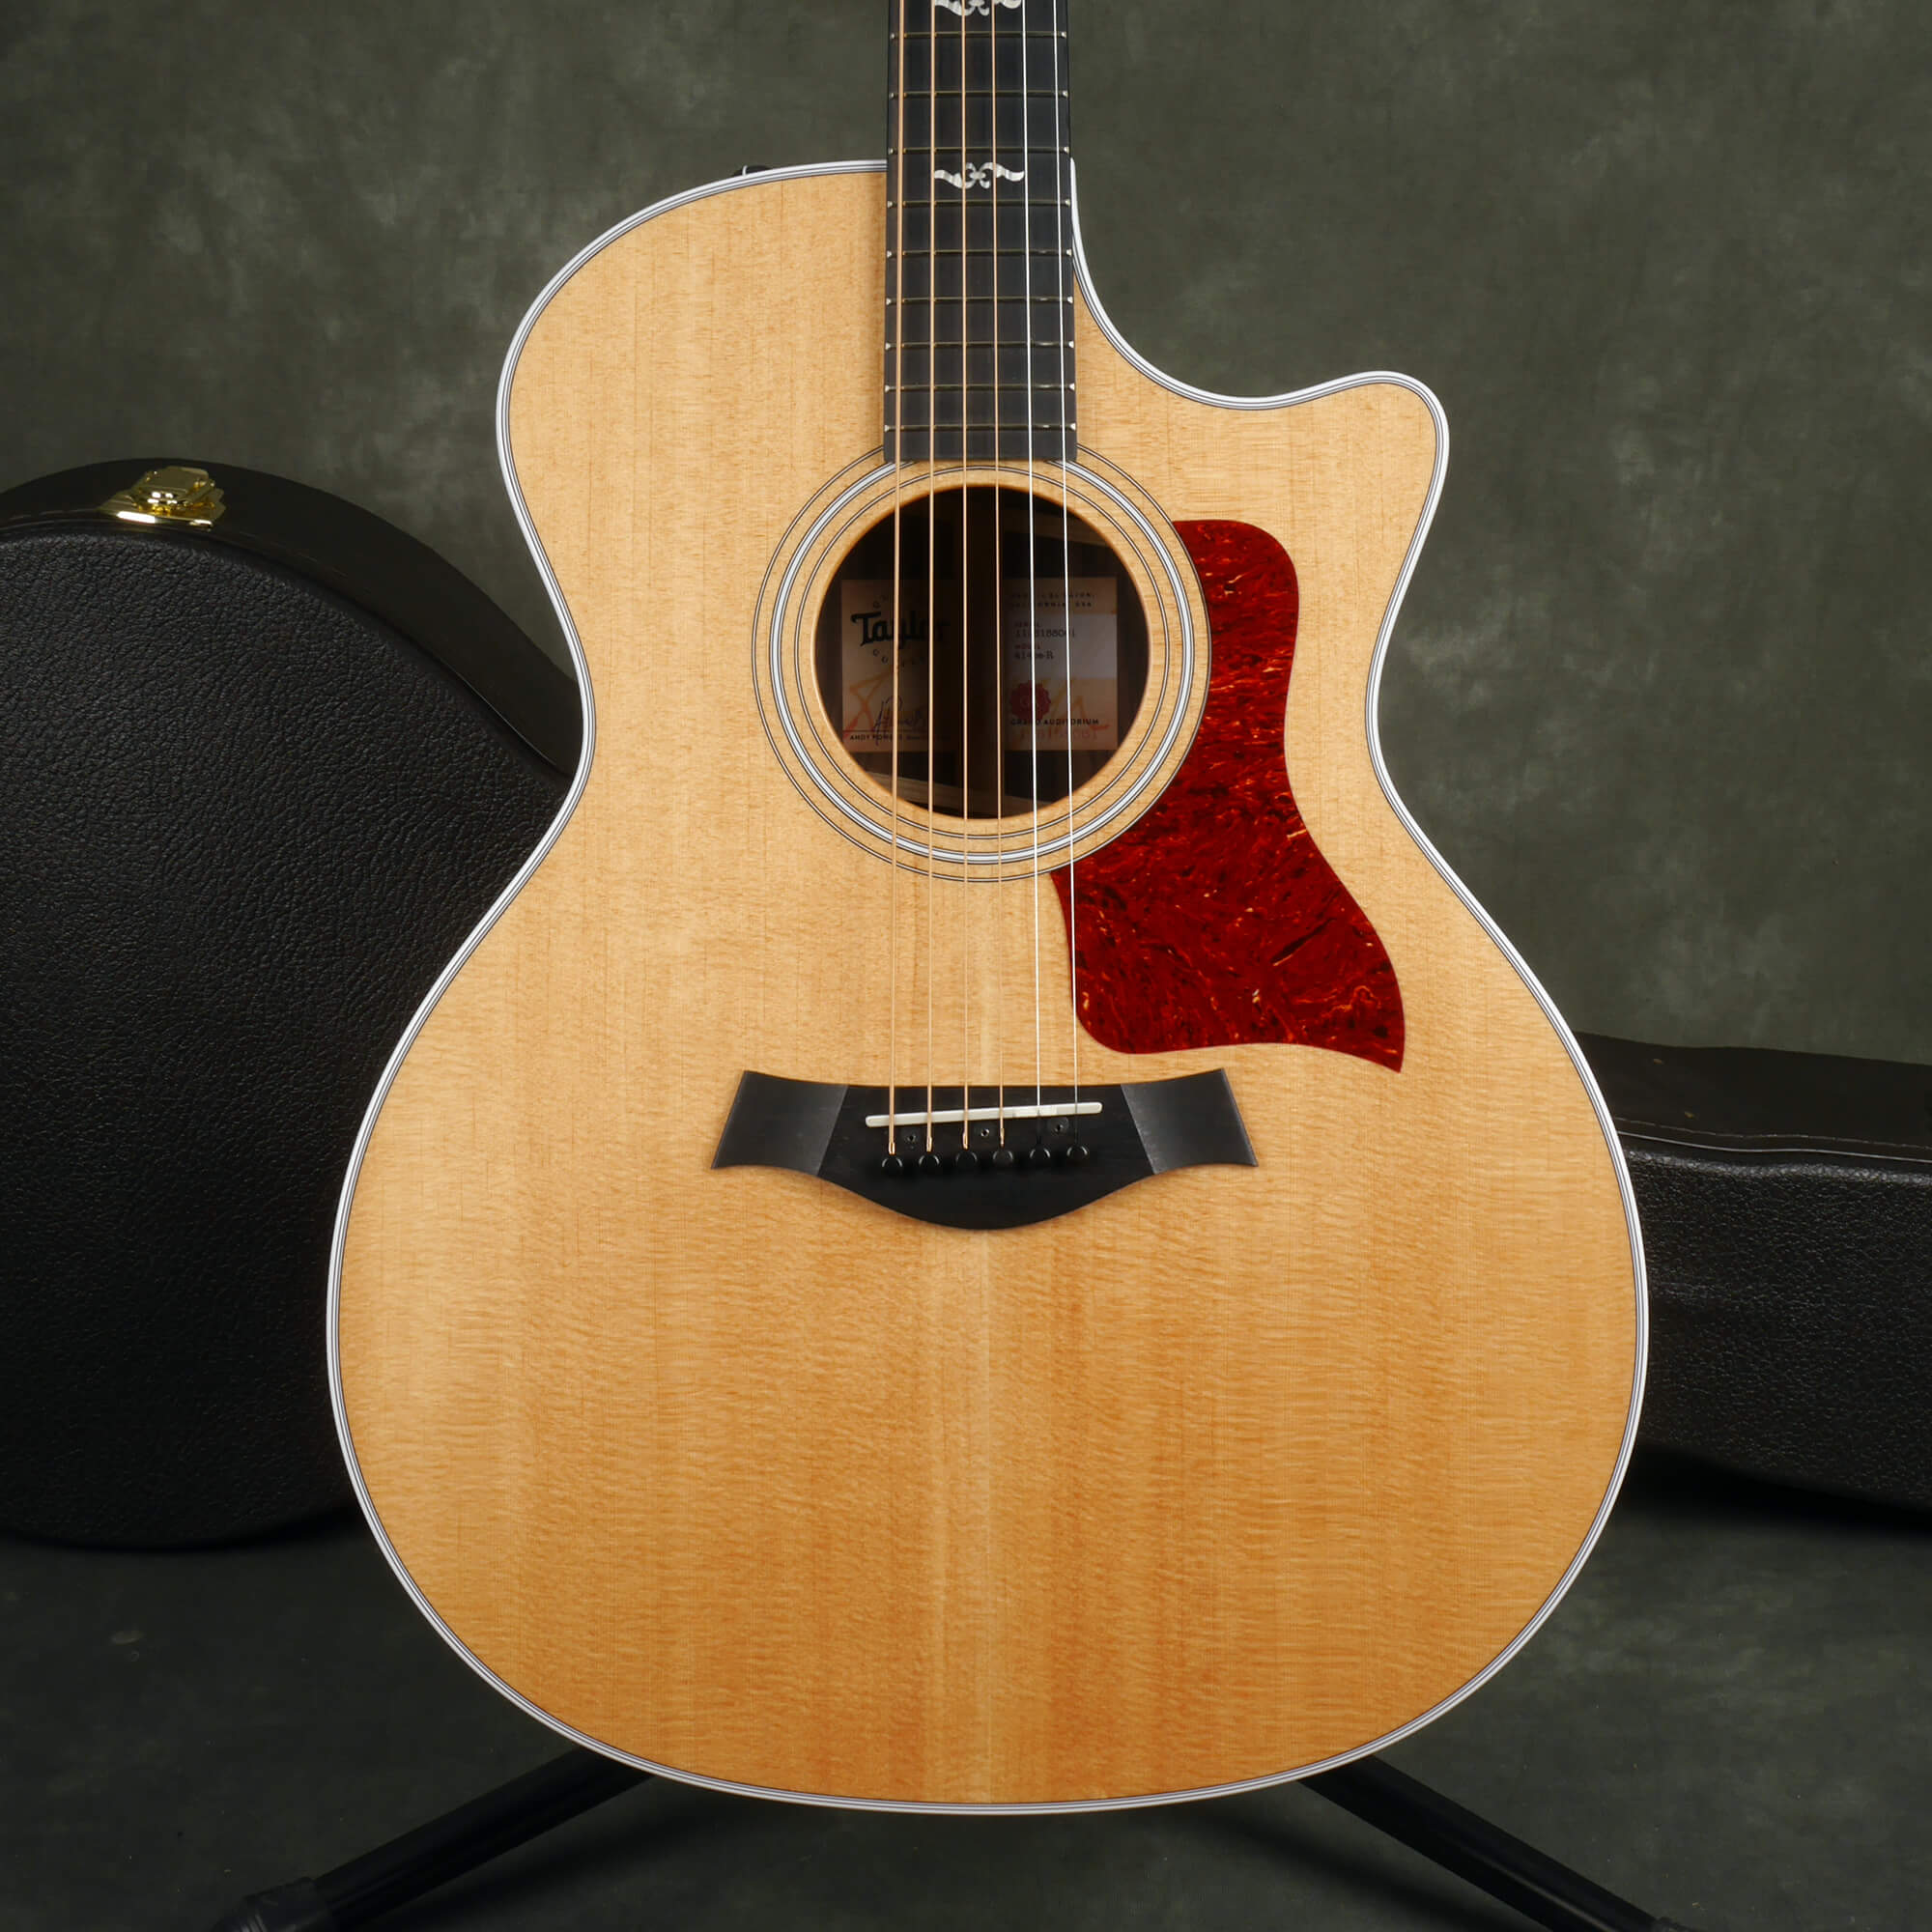 Taylor 414CE-R V-Class Acoustic Guitar - Natural w/Hard Case - 2nd Hand